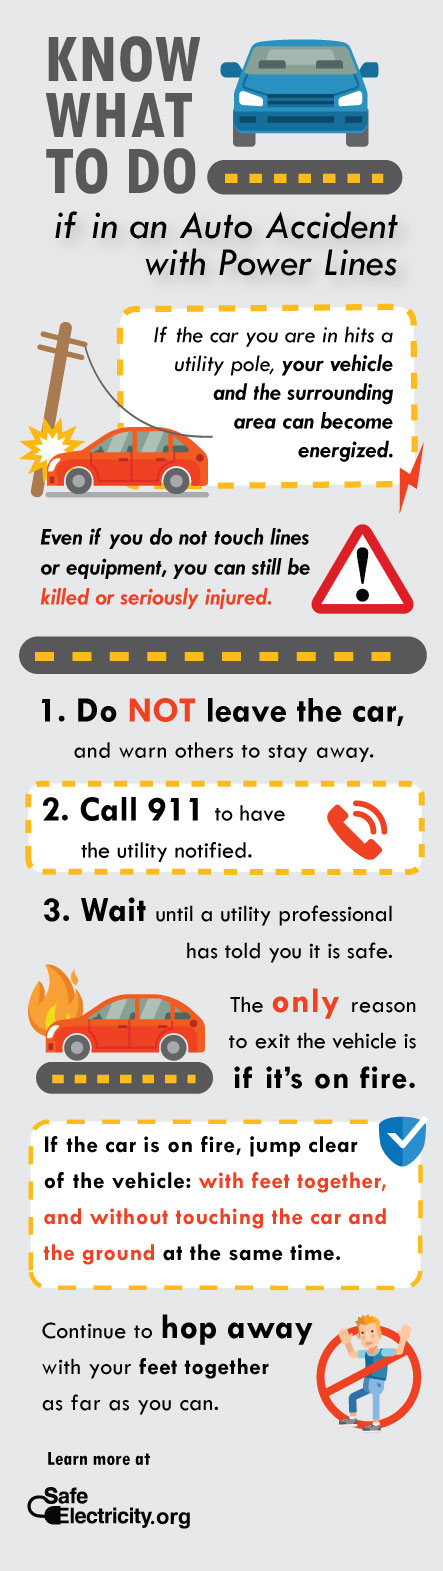 Know what to do if in an auto accident with power lines